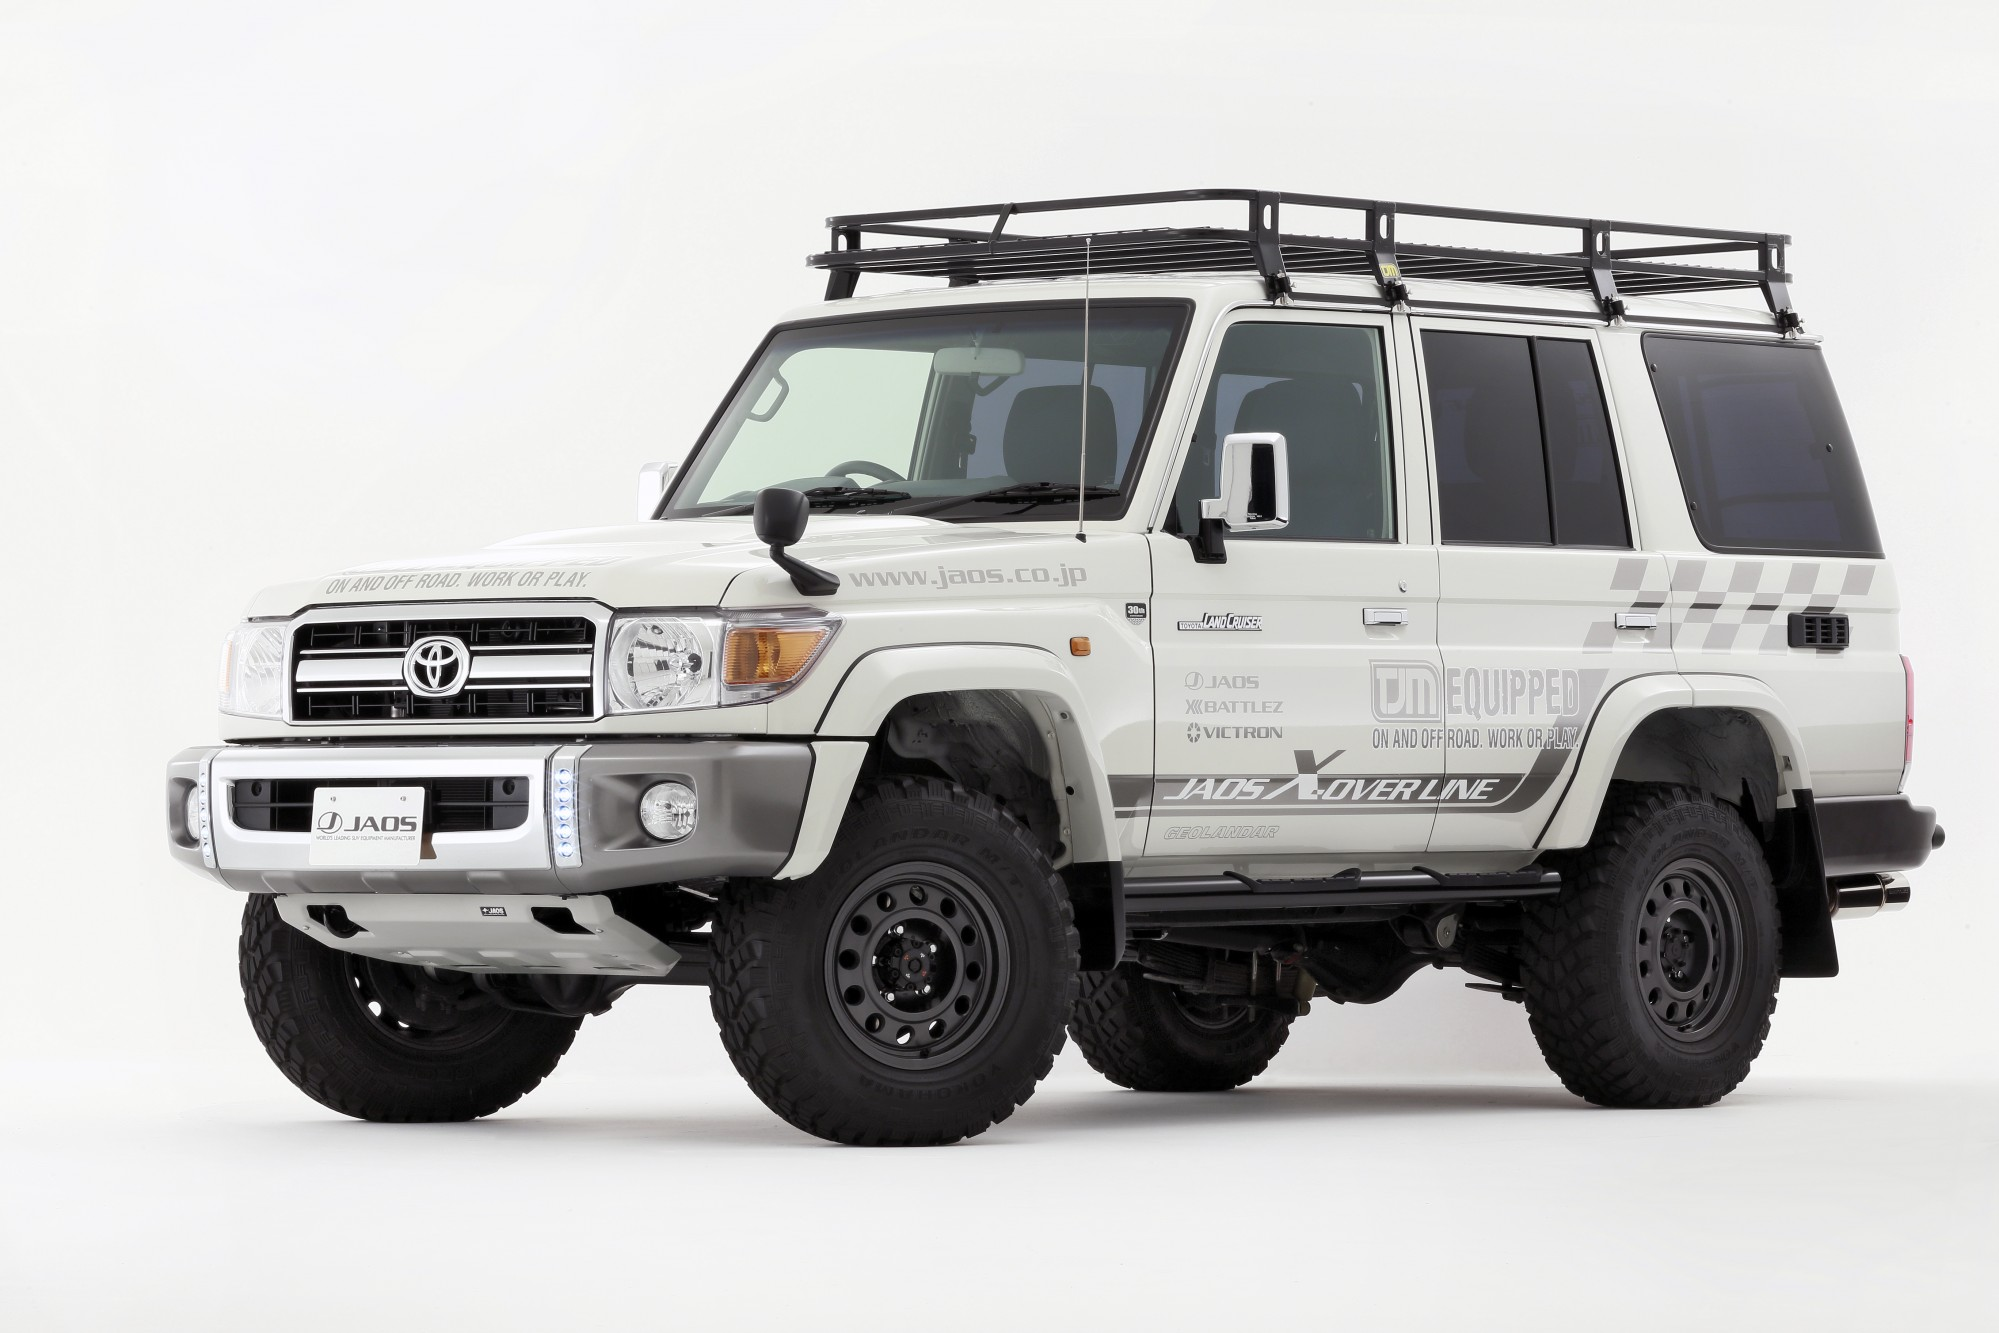 Toyota Land Cruiser 70 >> TOYOTA LAND CRUISER 70 |ギャラリー | JAOS